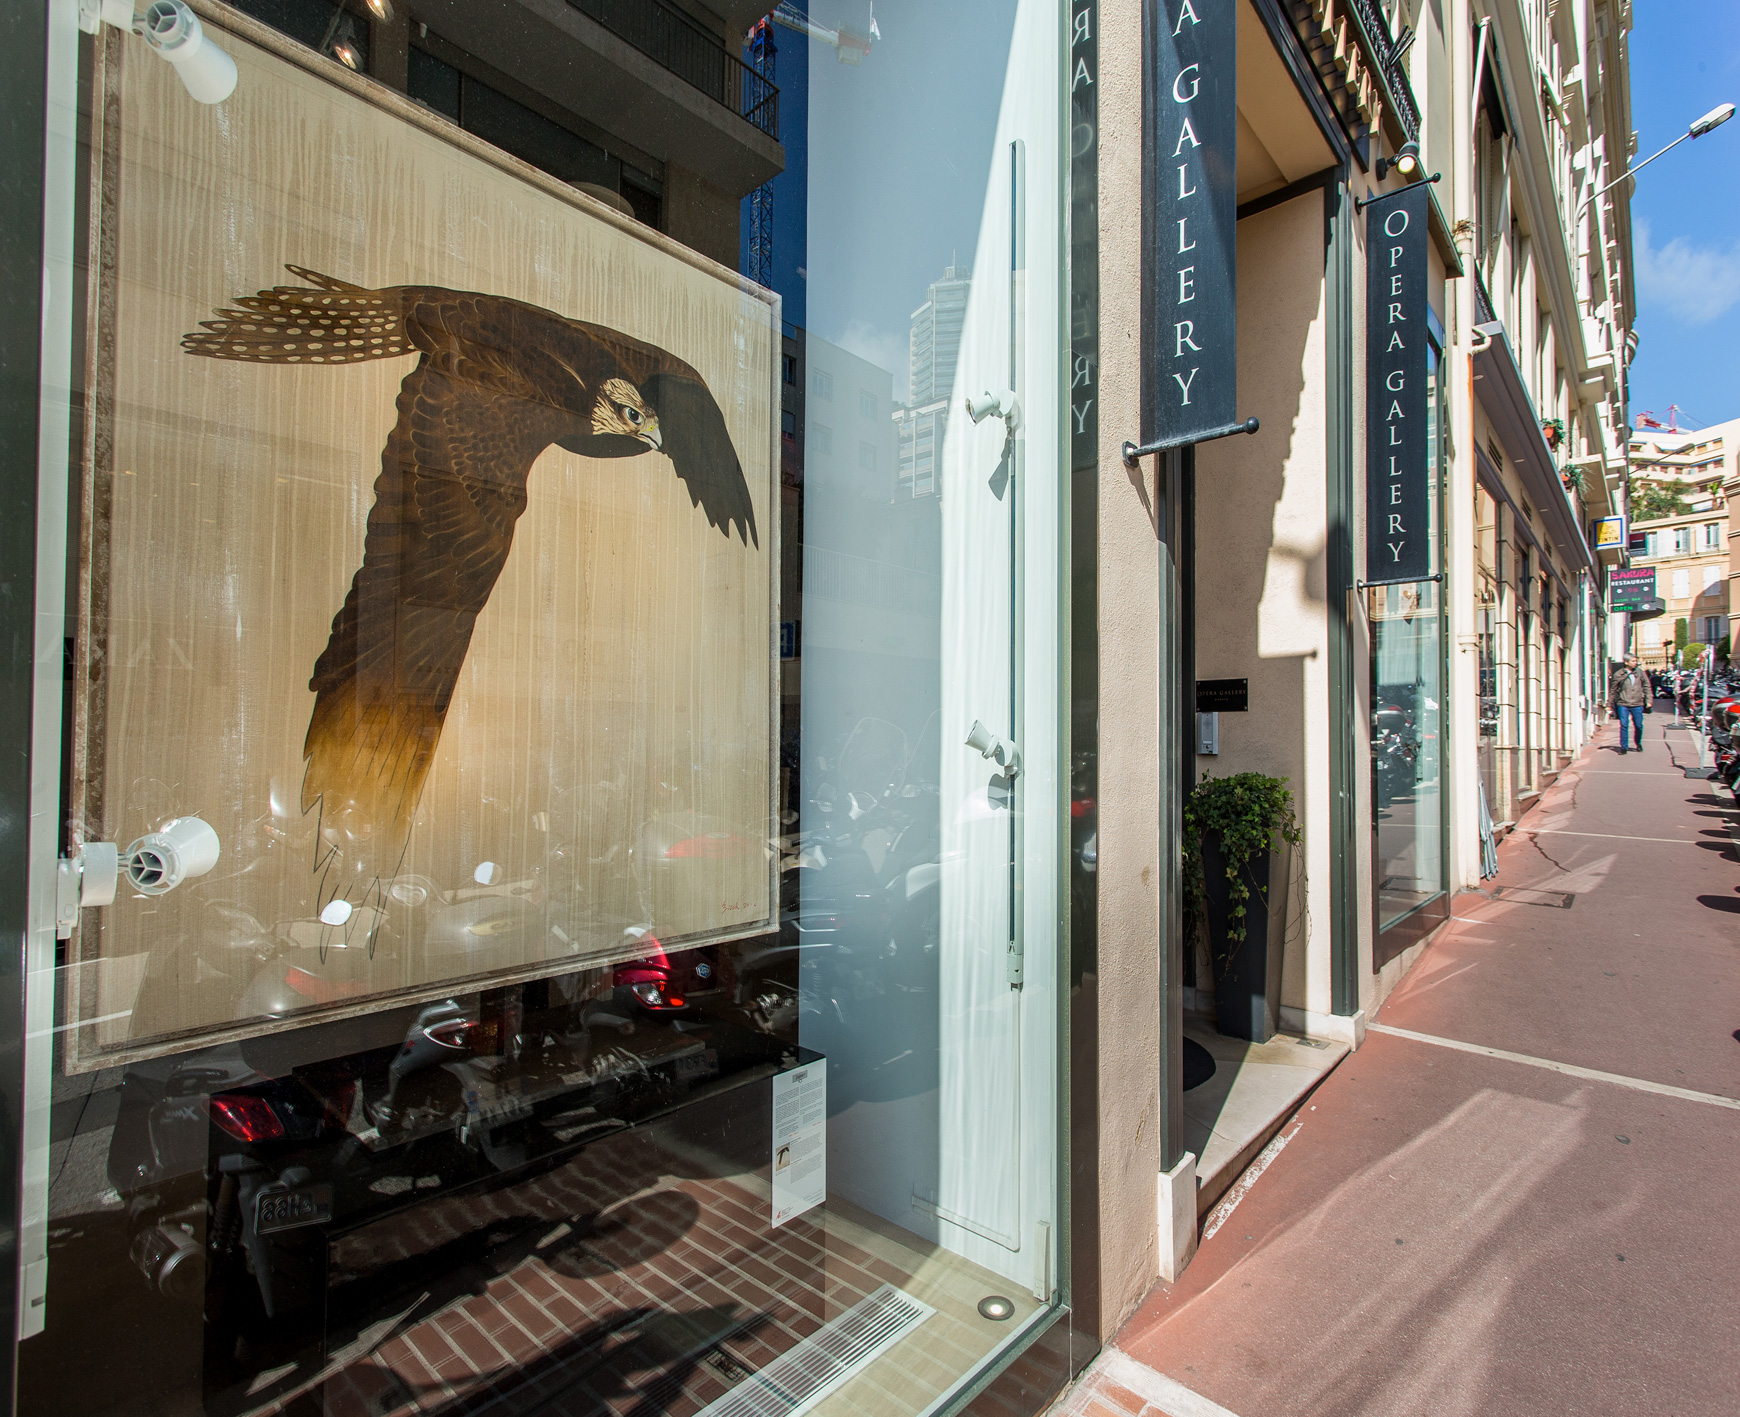 OPERA GALLERY MONACO saker%20falcon%20falco%20cherrug%20threatened%20endangered%20extinction Thierry Bisch painter animals painting art decoration hotel design interior luxury nature biodiversity conservation